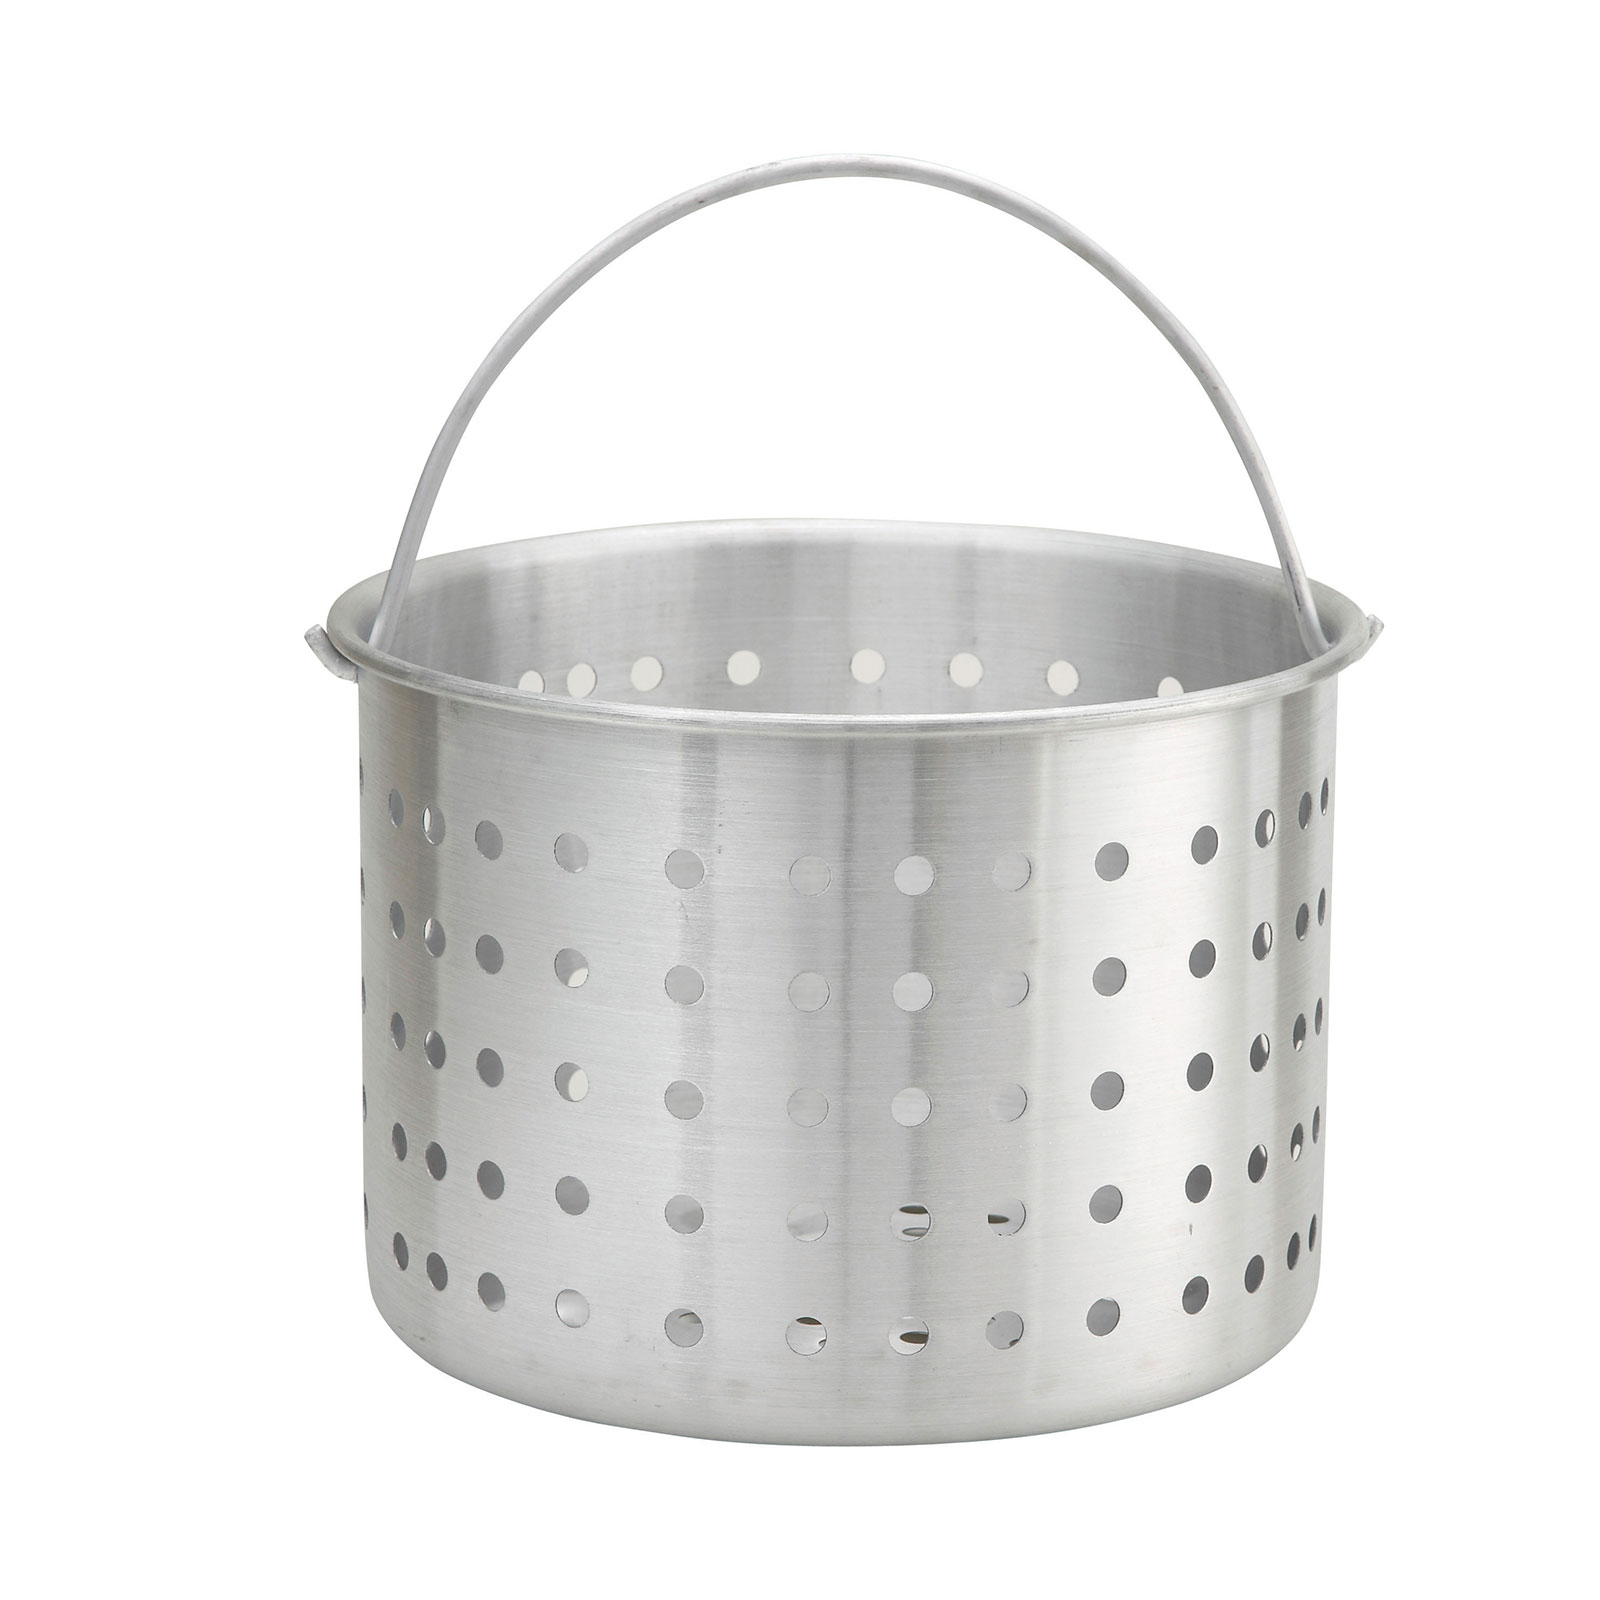 Winco ALSB-20 stock / steam pot, steamer basket